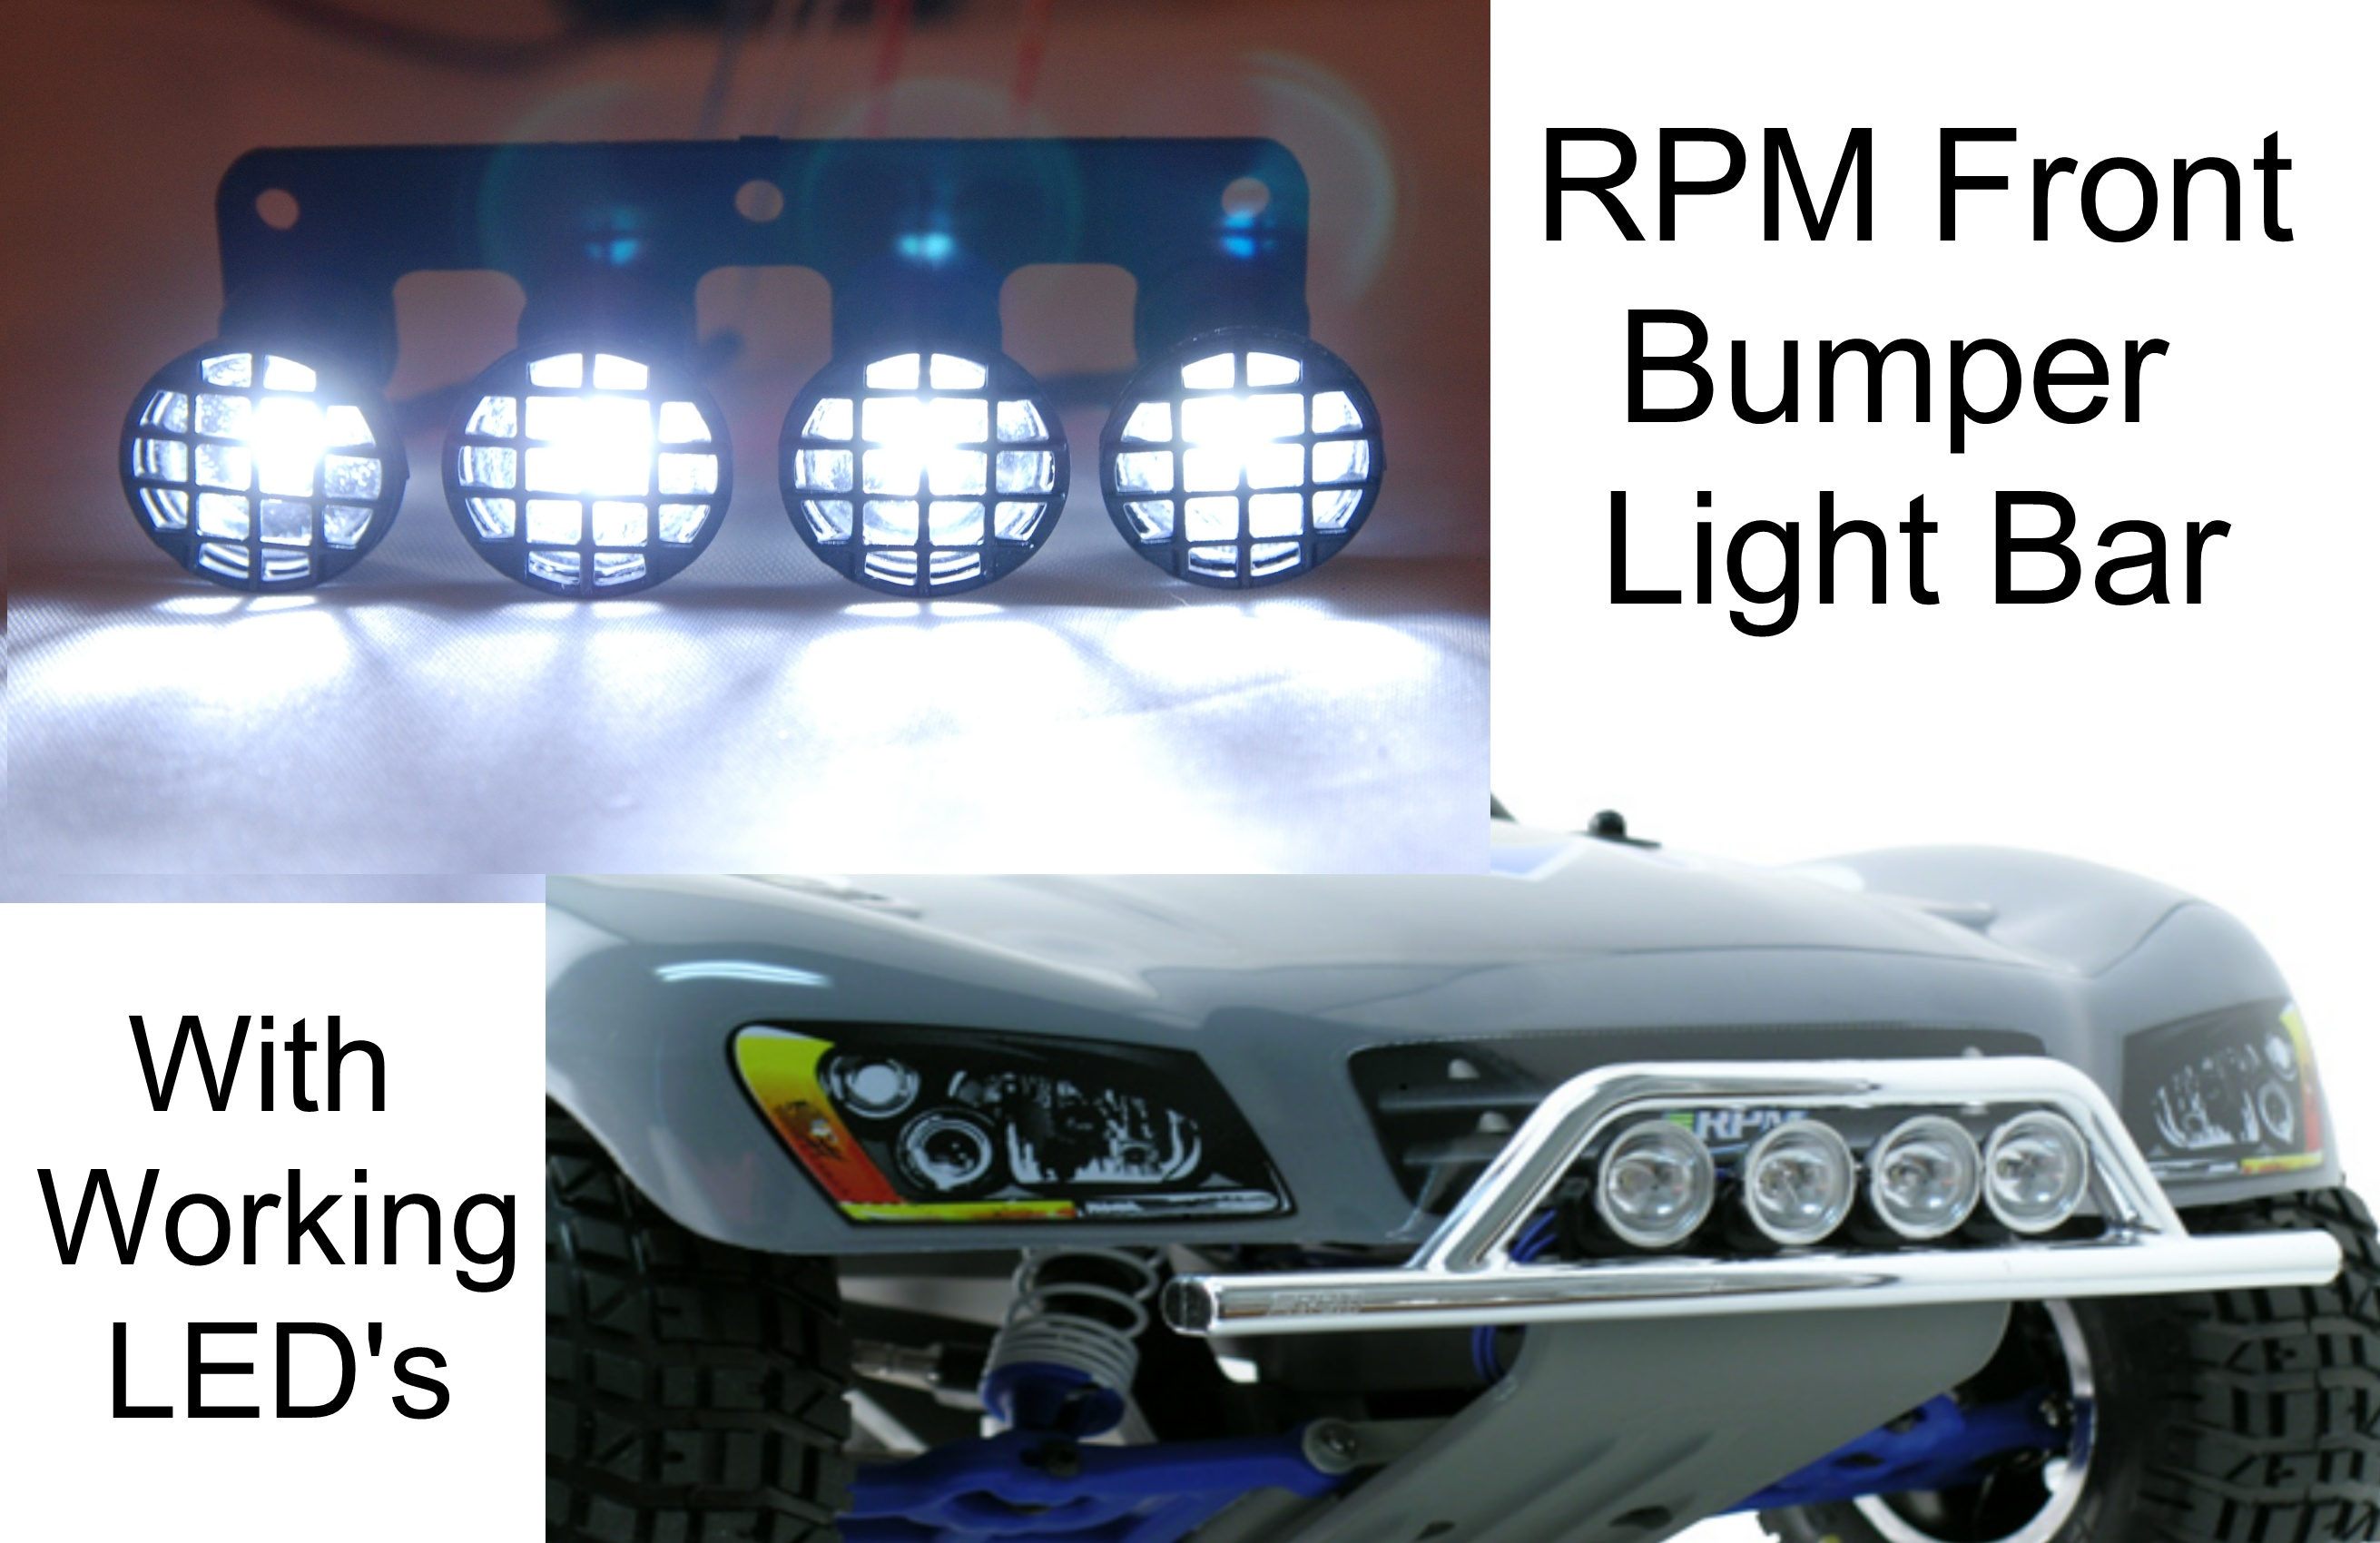 RPM Front Bumper Light Bar with working lights Black